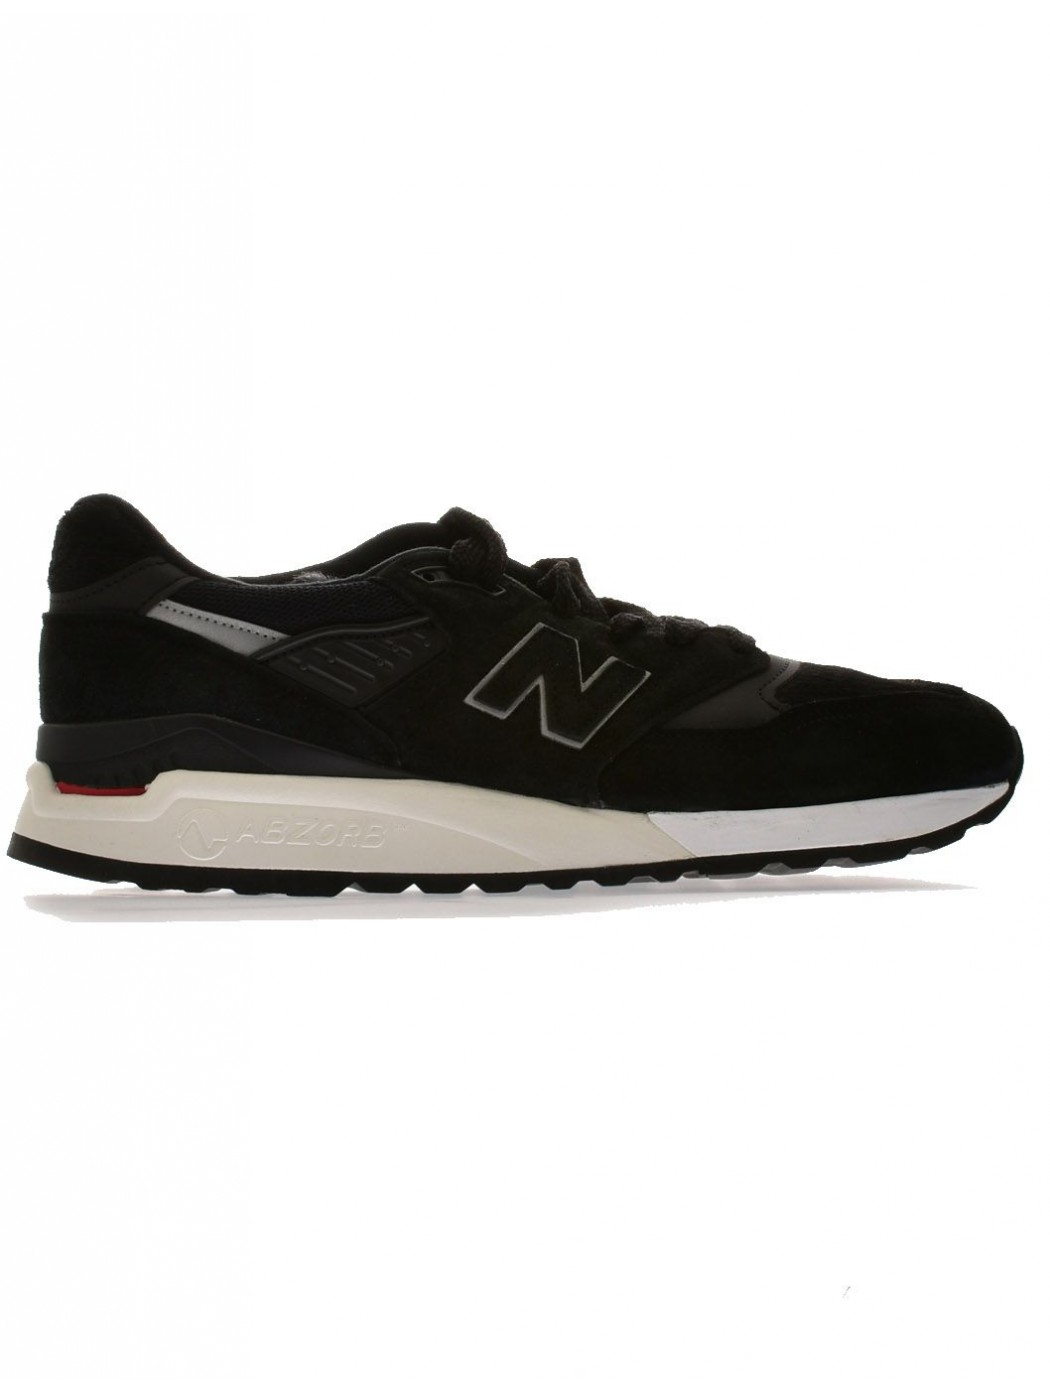 NEW BALLANCE M998 BLACK SNEAKERS